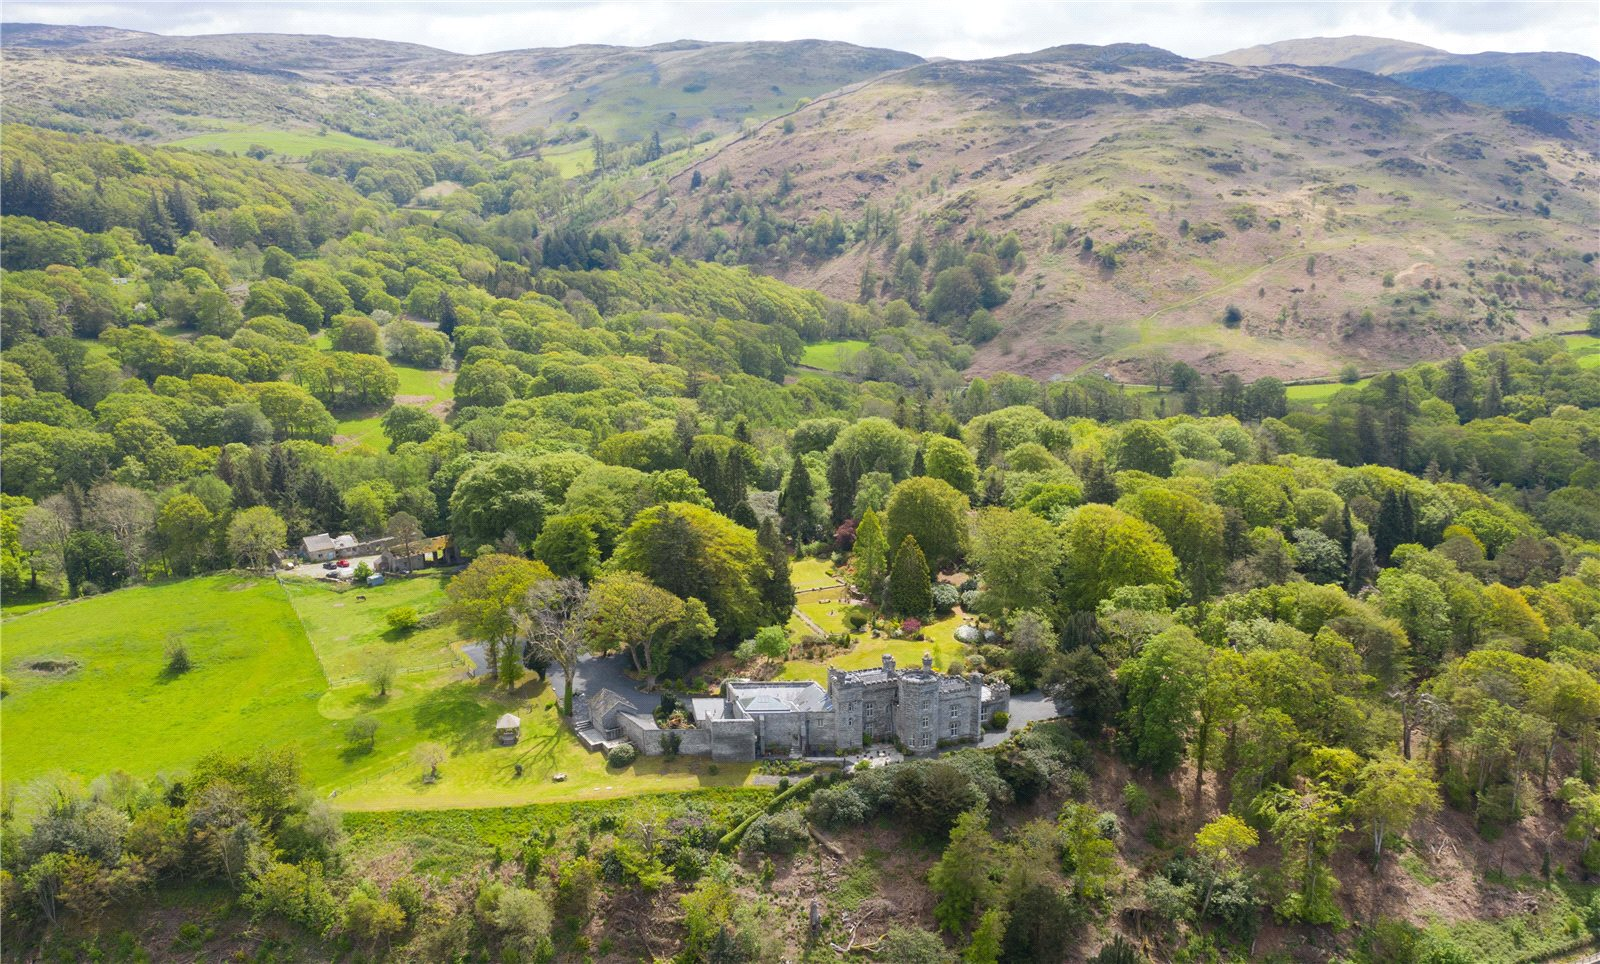 Wales - Real Estate and Apartments for Sale | Christie's